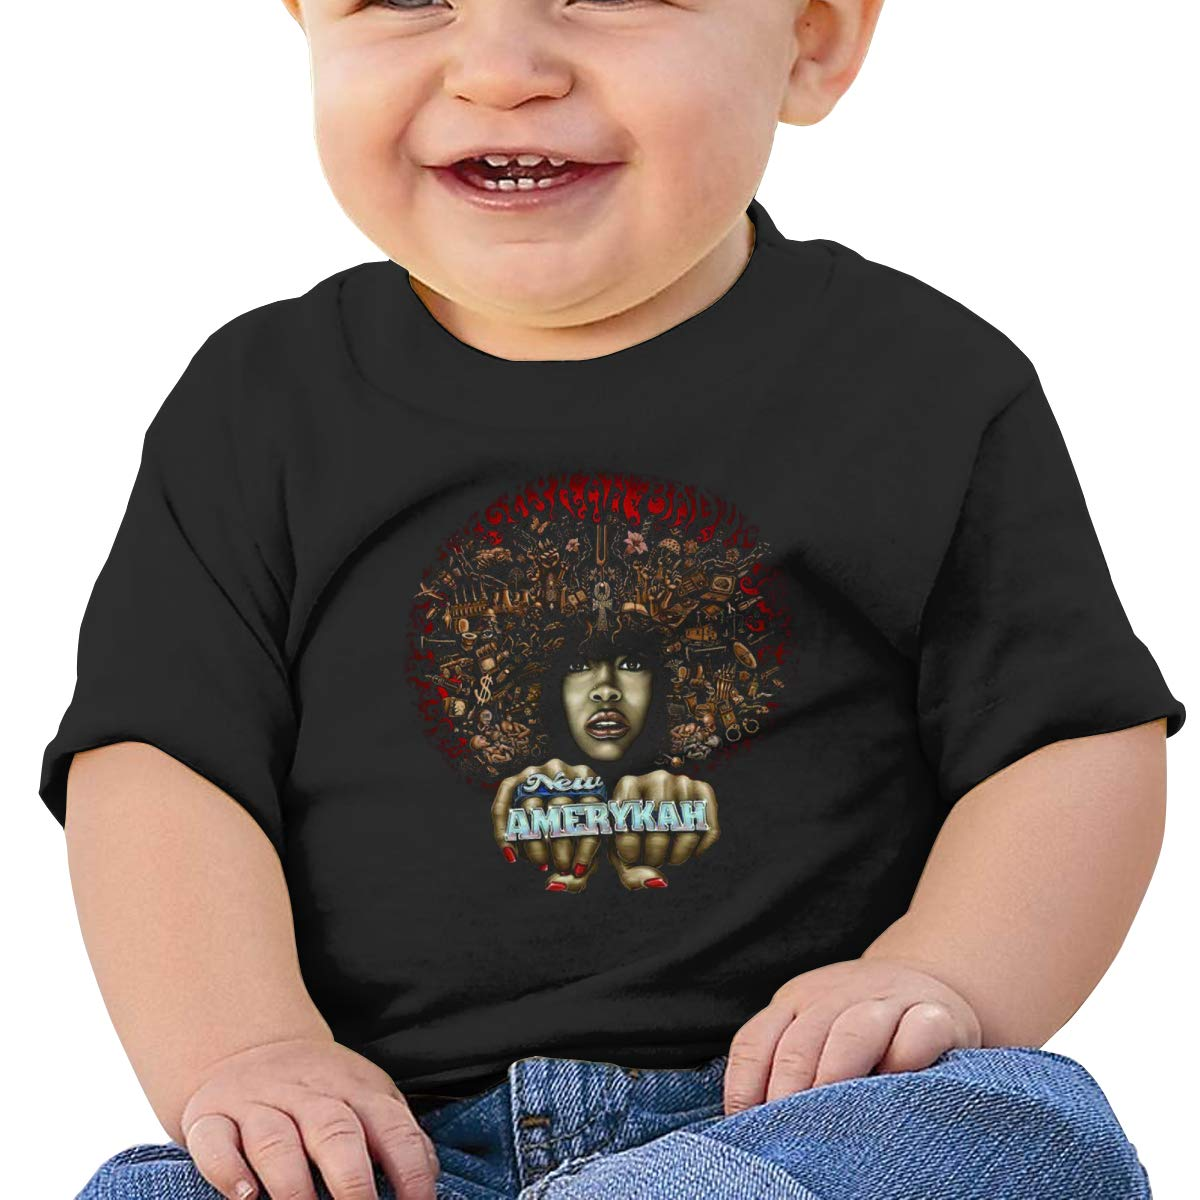 MONIKAL Unisex Infant Short Sleeve T-Shirt Erykah-Badu-New-Amerykah Toddler Kids Organic Cotton Graphic Tee Tops